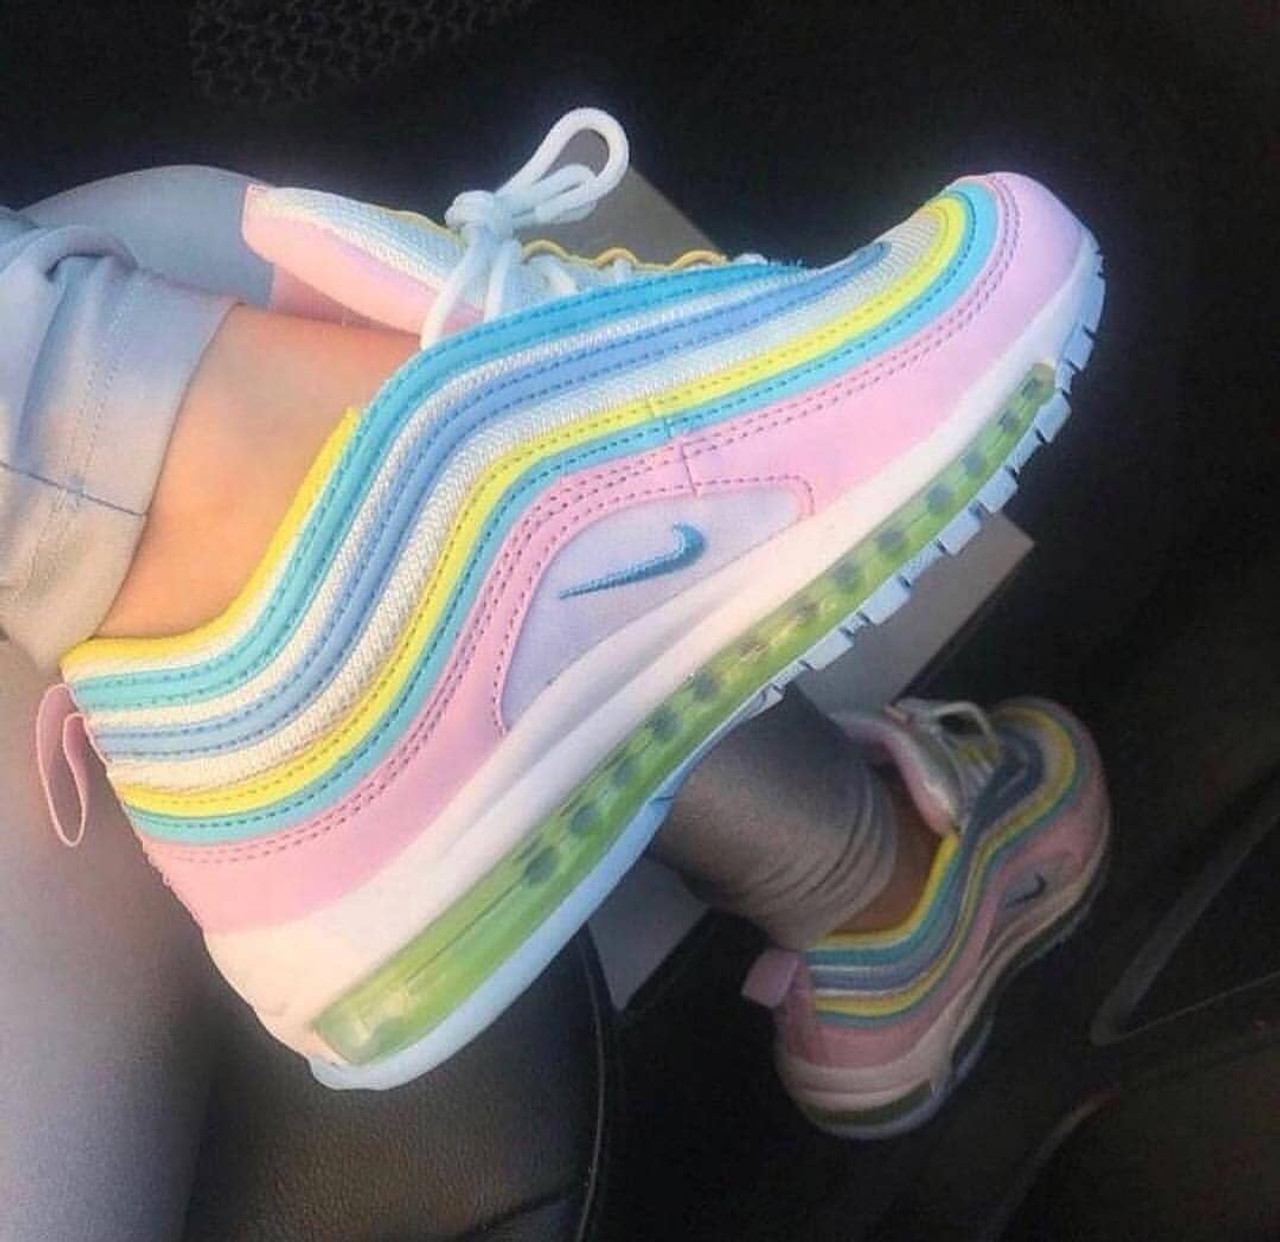 new concept 3f00b 8ff53 Easter AirMax 97 ( Sizes 5.5-8 On sale for 180$ ) Read Details!